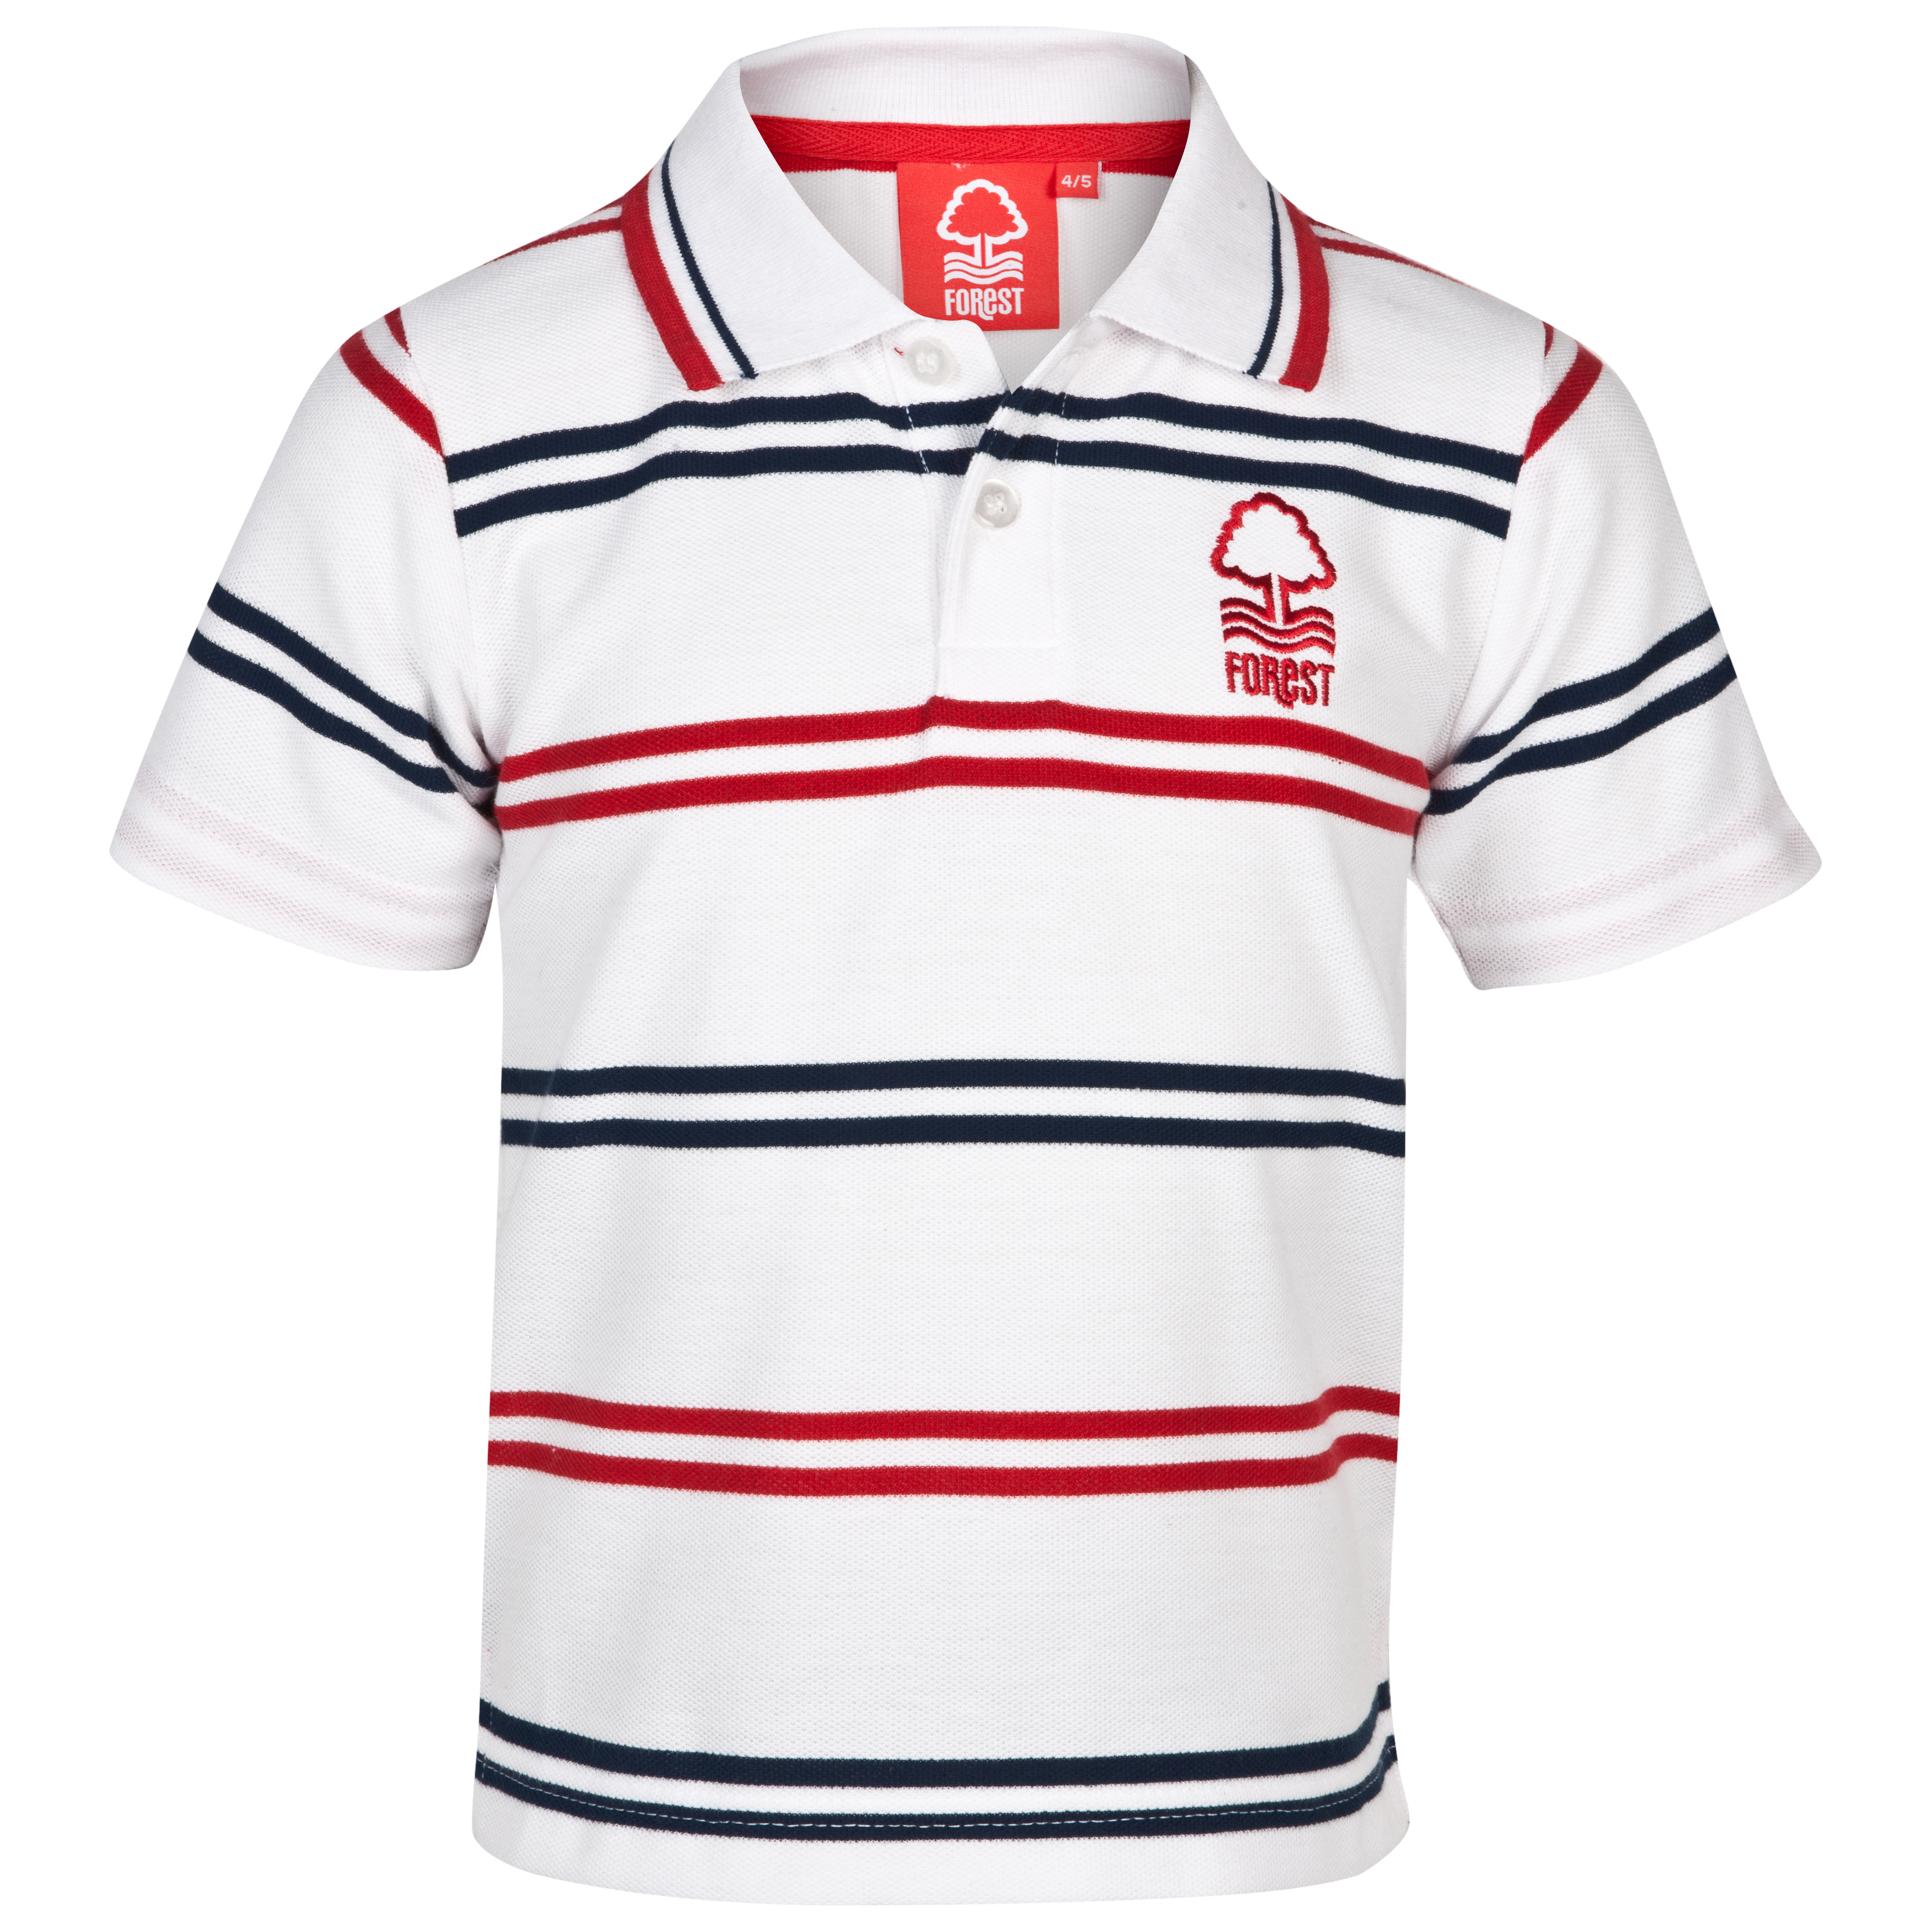 Nottingham Forest Essential Draw Polo Top - White/Red/Navy - Infant Boys